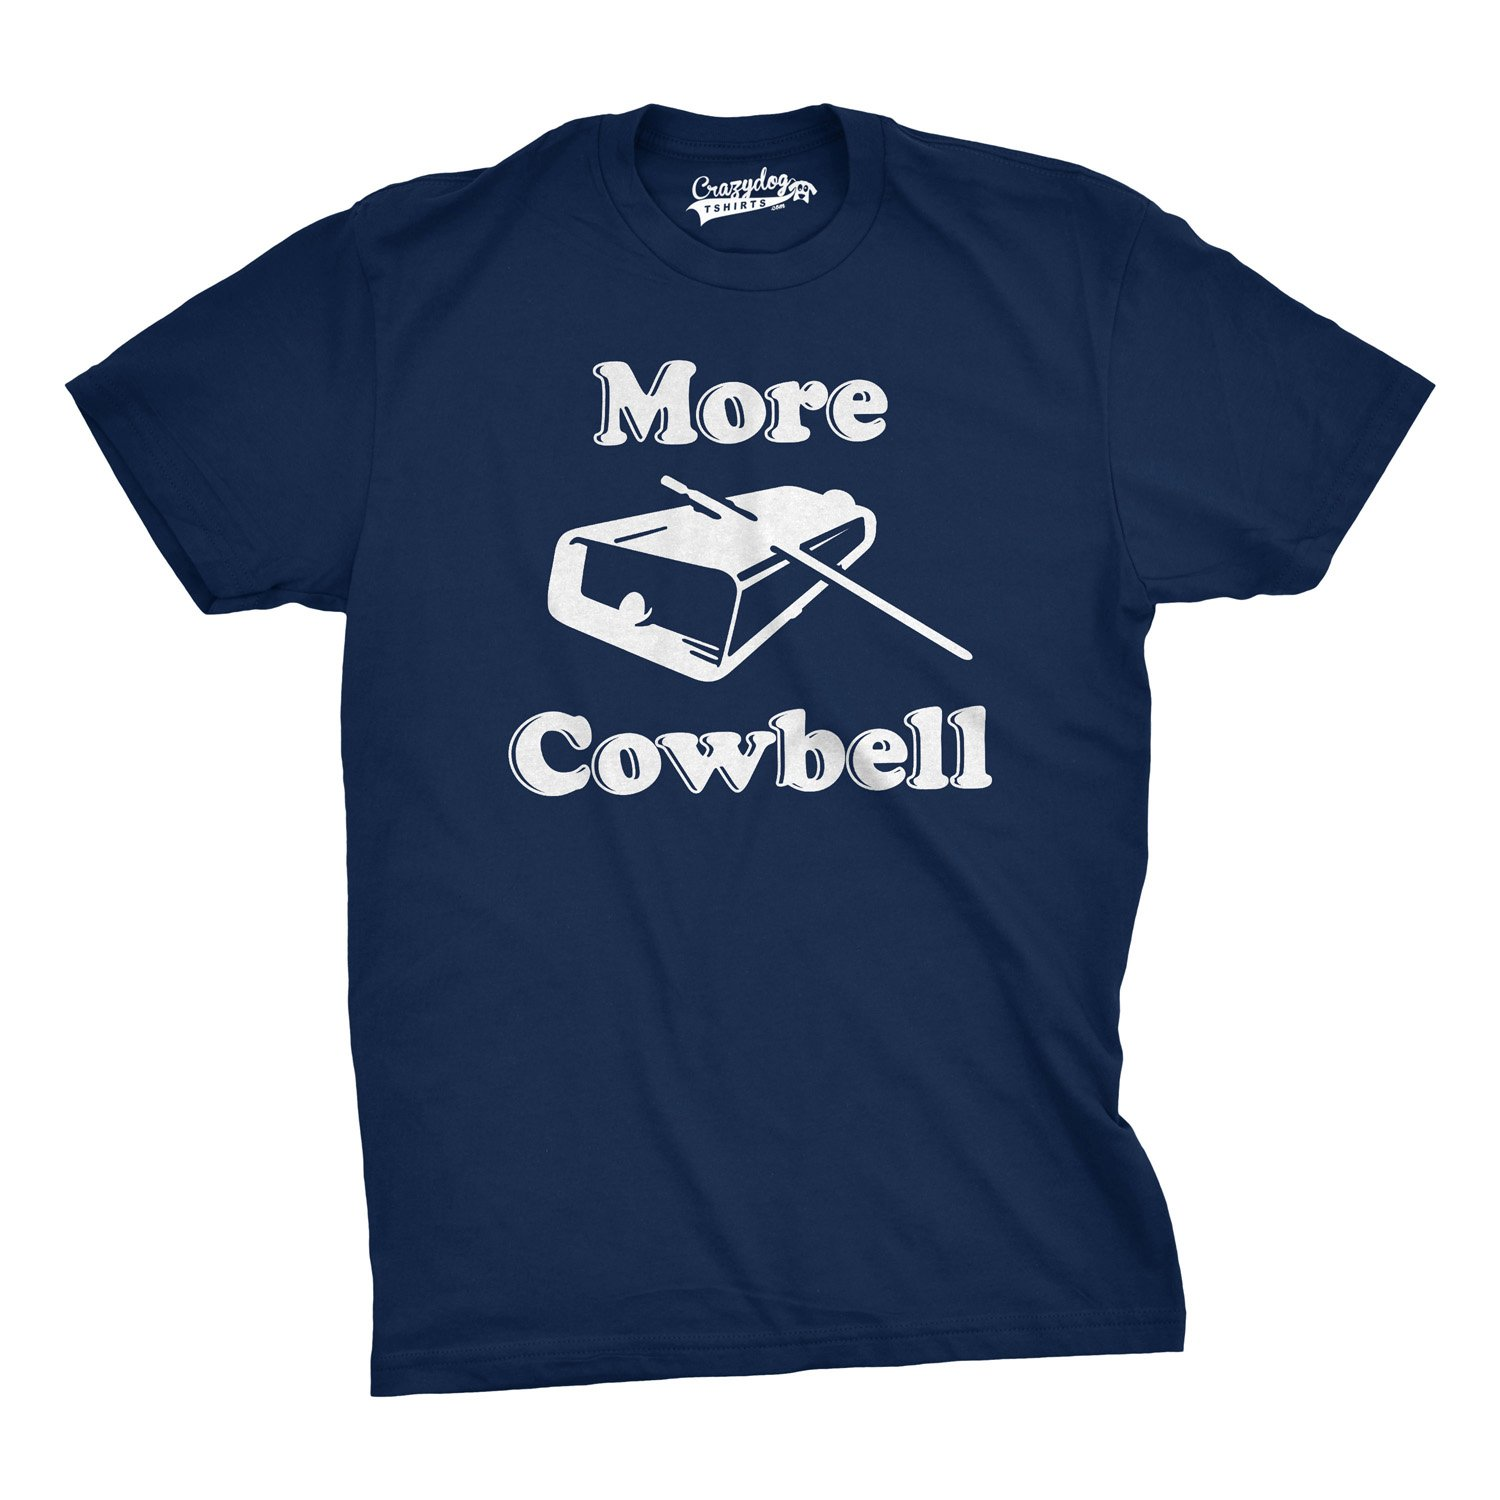 Mens More Cowbell T shirt Funny Novelty Shirts Humor Gifts for Dad Cool Graphic Crazy Dog Tshirts